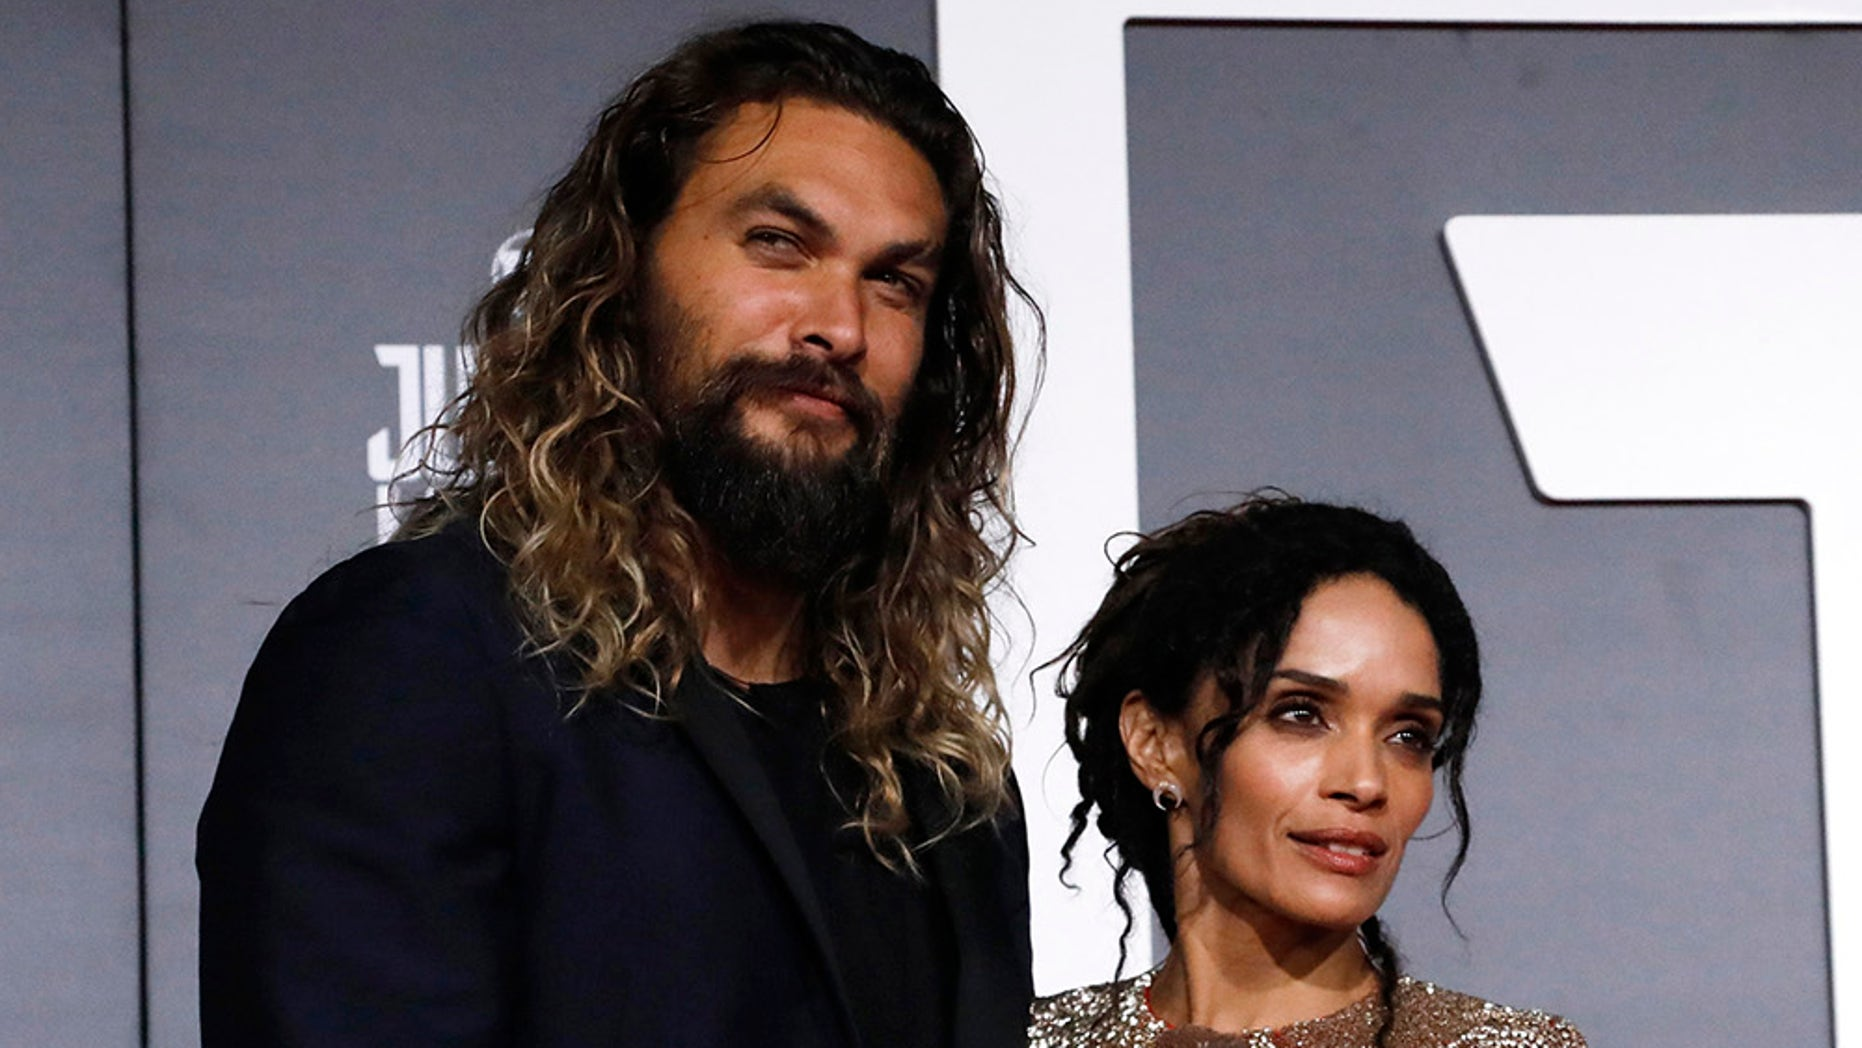 Jason Momoa Reveals Metallica Album That Inspired Him to Build Aquaman